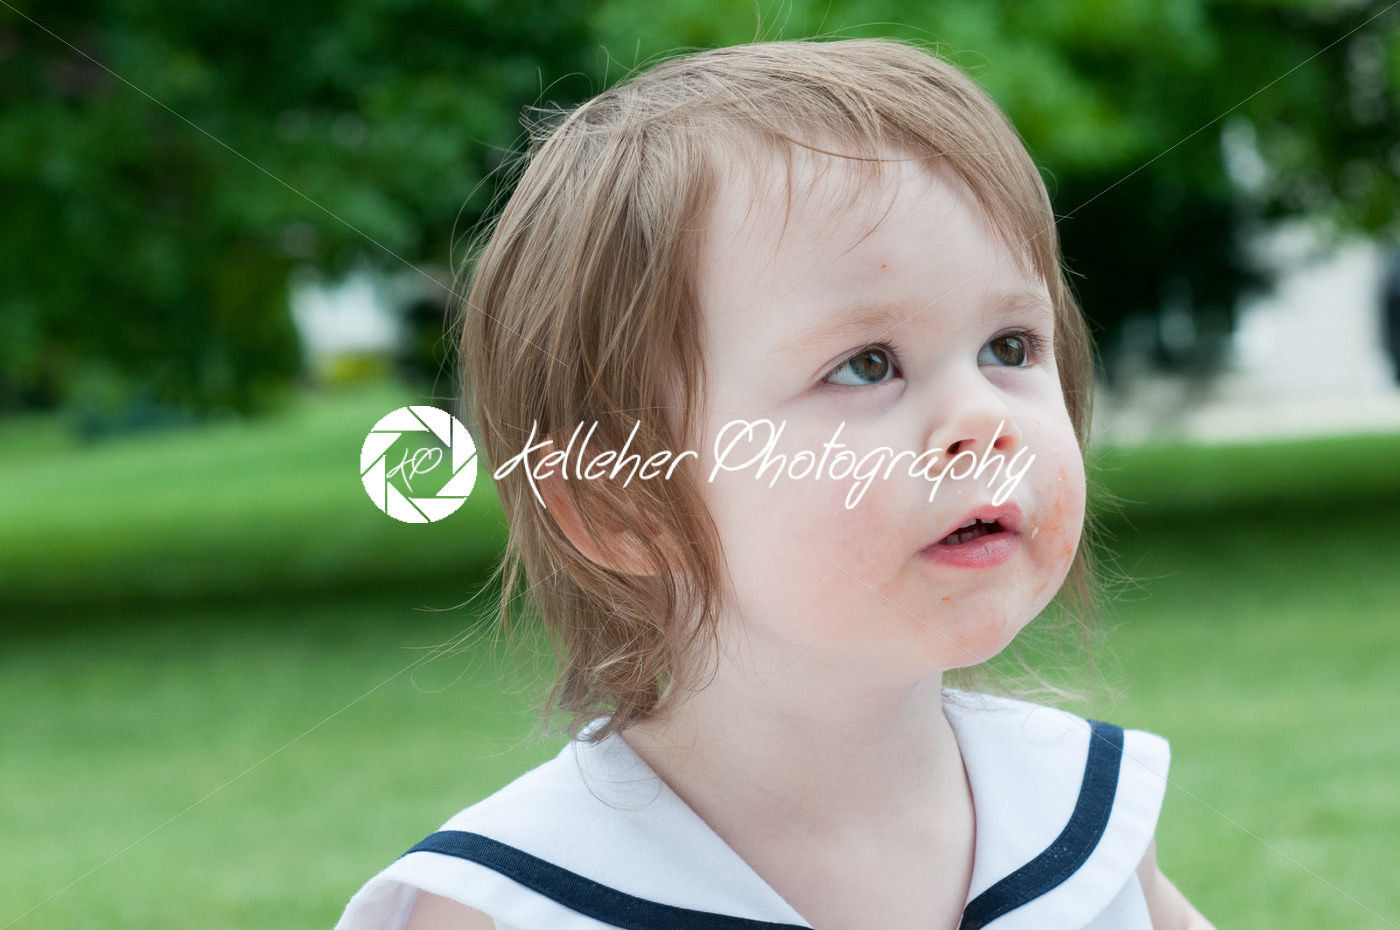 Portrait of a cute adorable little girl child in dress outside - Kelleher Photography Store